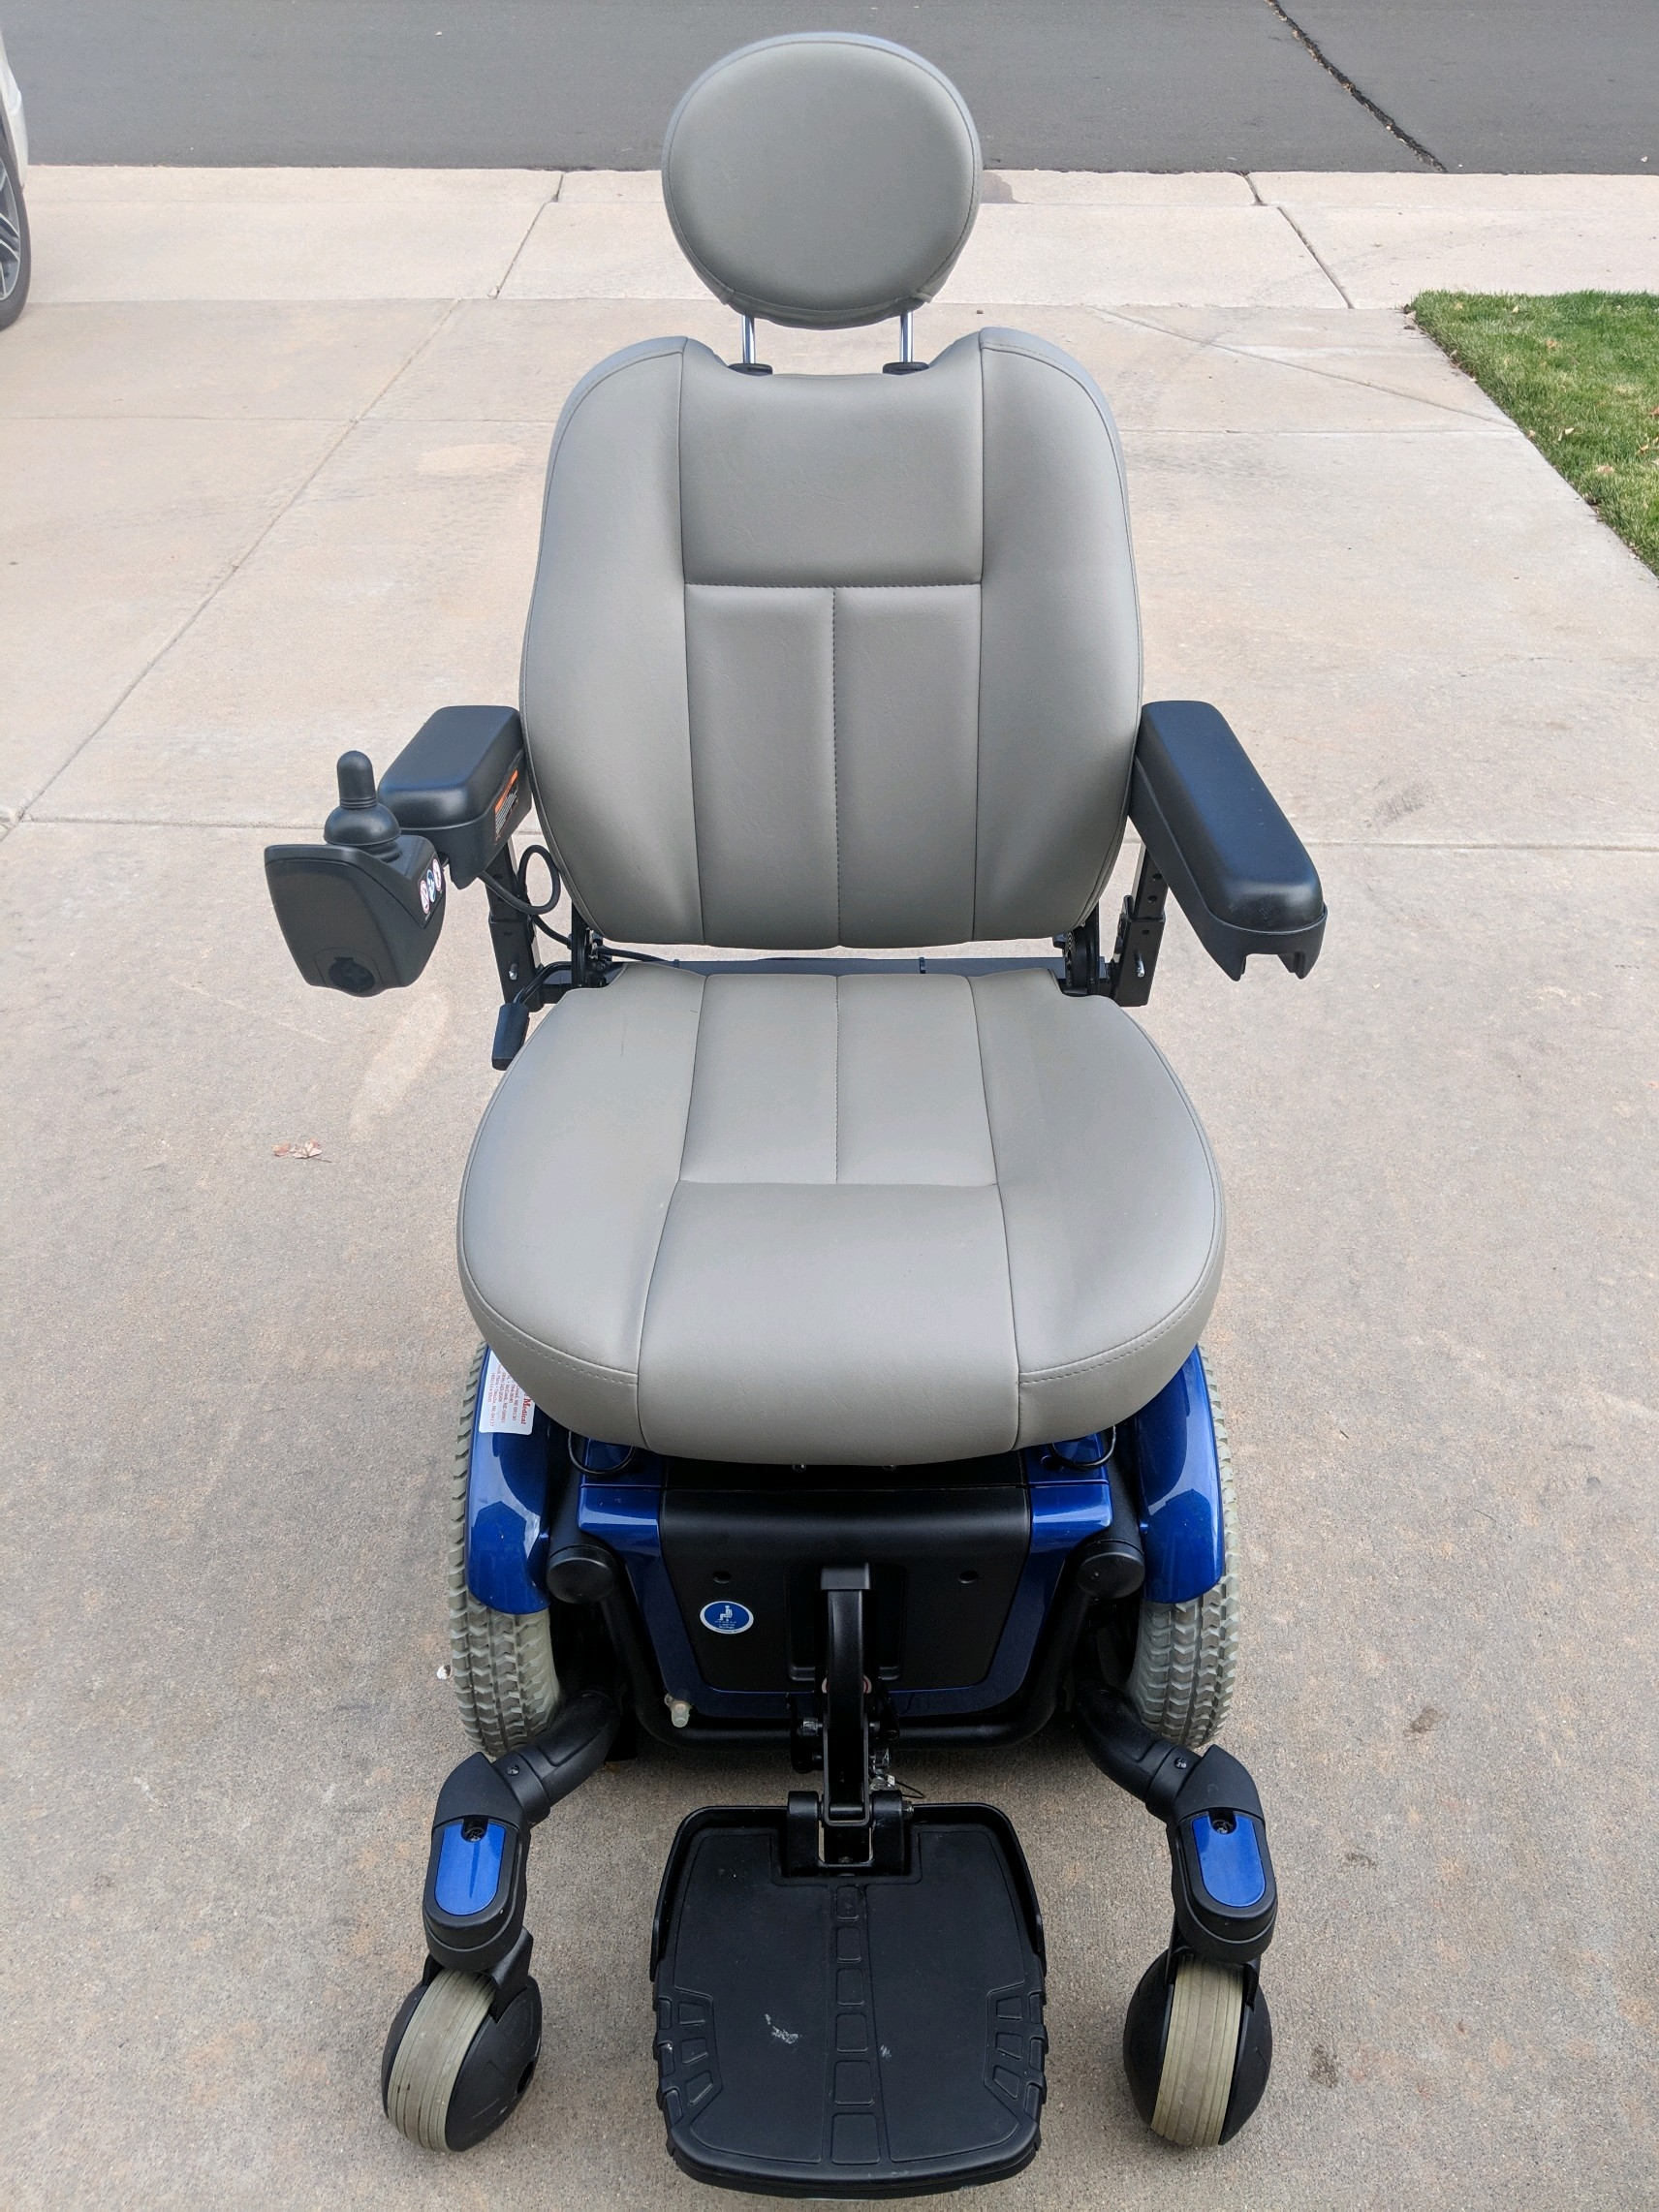 Quantum 600 - Buy & Sell Used Electric Wheelchairs, Mobility